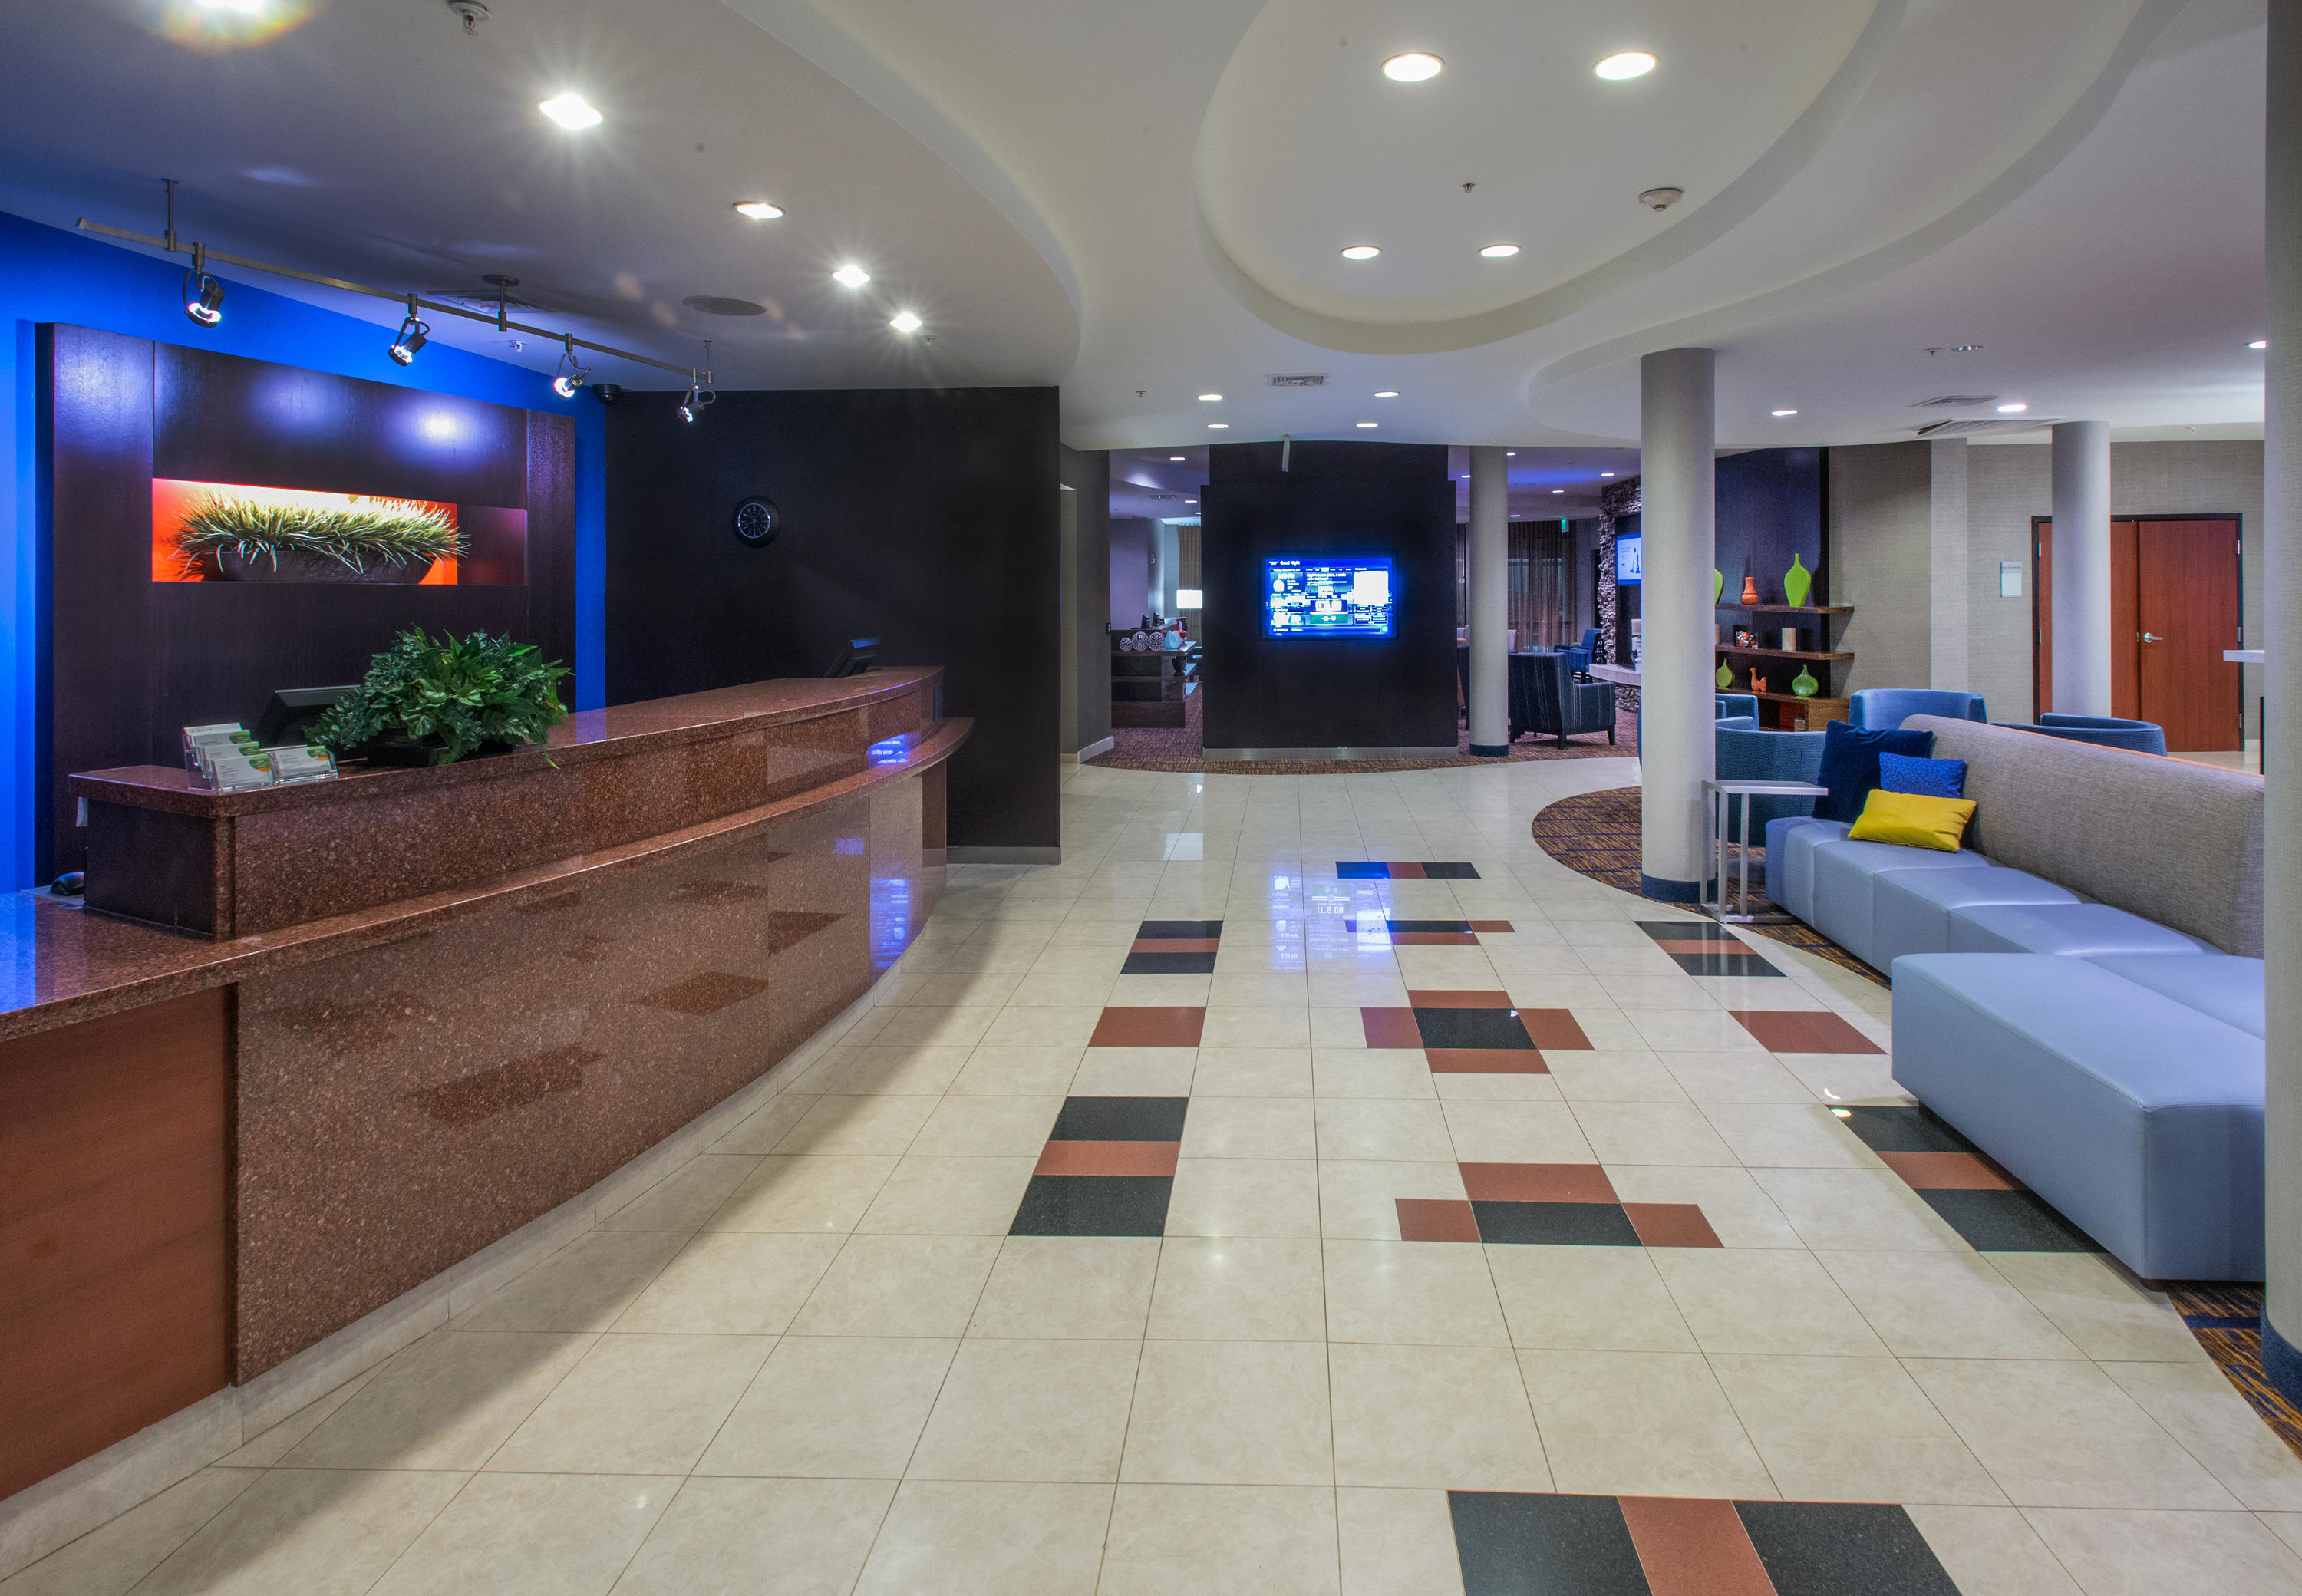 Courtyard by Marriott Albany image 10